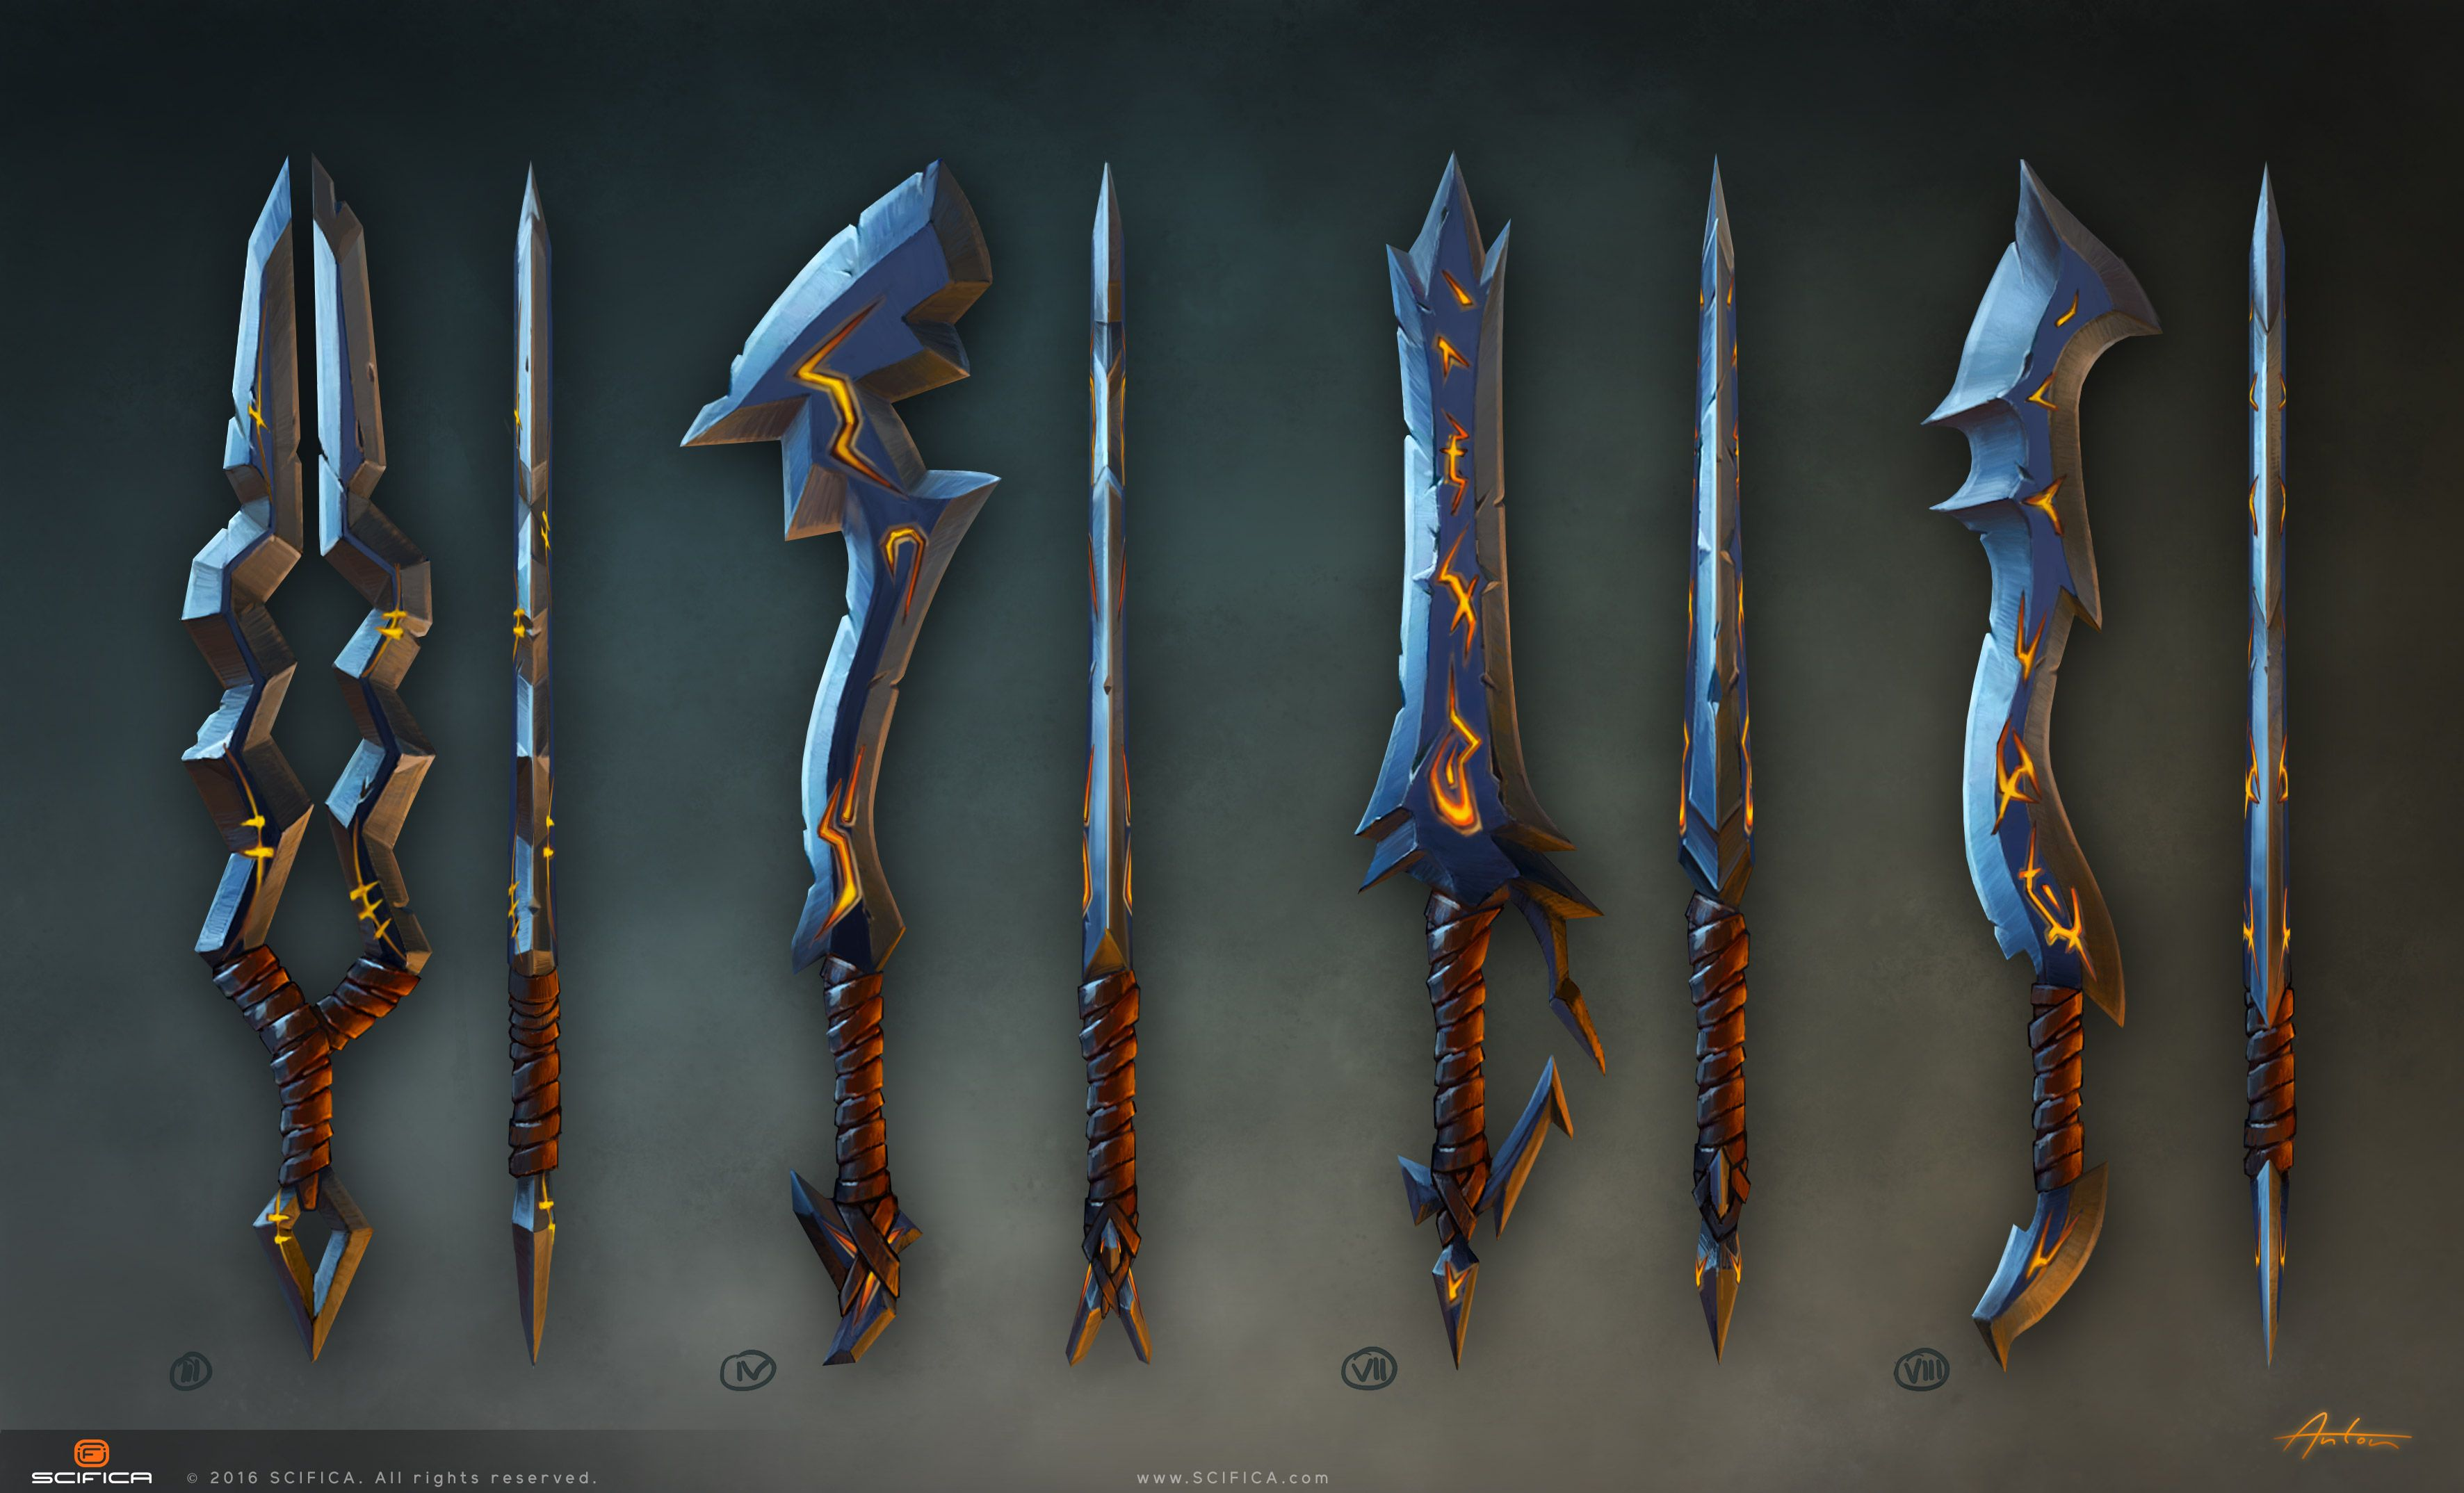 Weapons Concept Art For Video Game Made